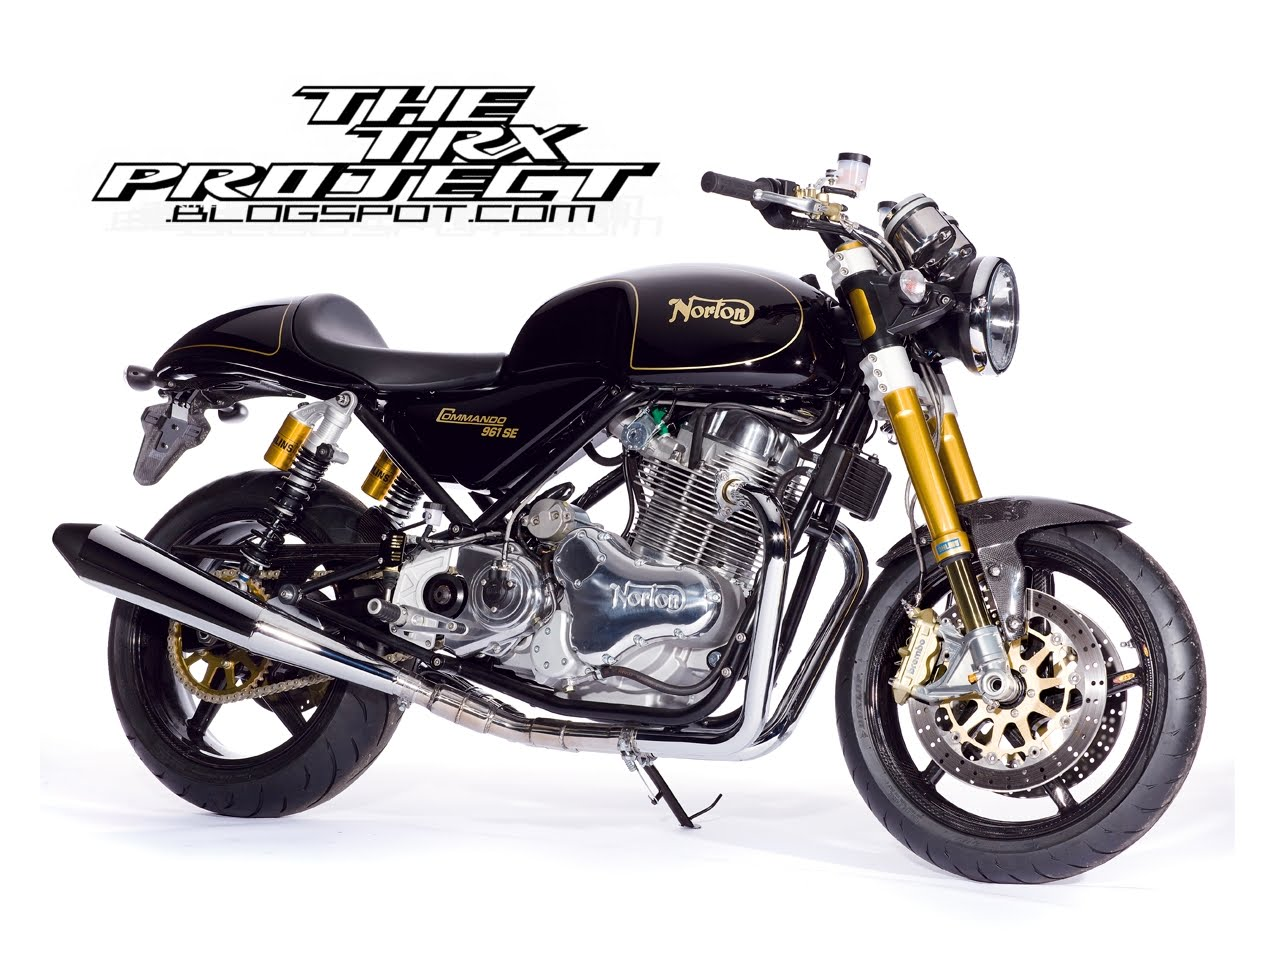 The TRX Project. The Yamaha TRX 850 Blog: Norton 961